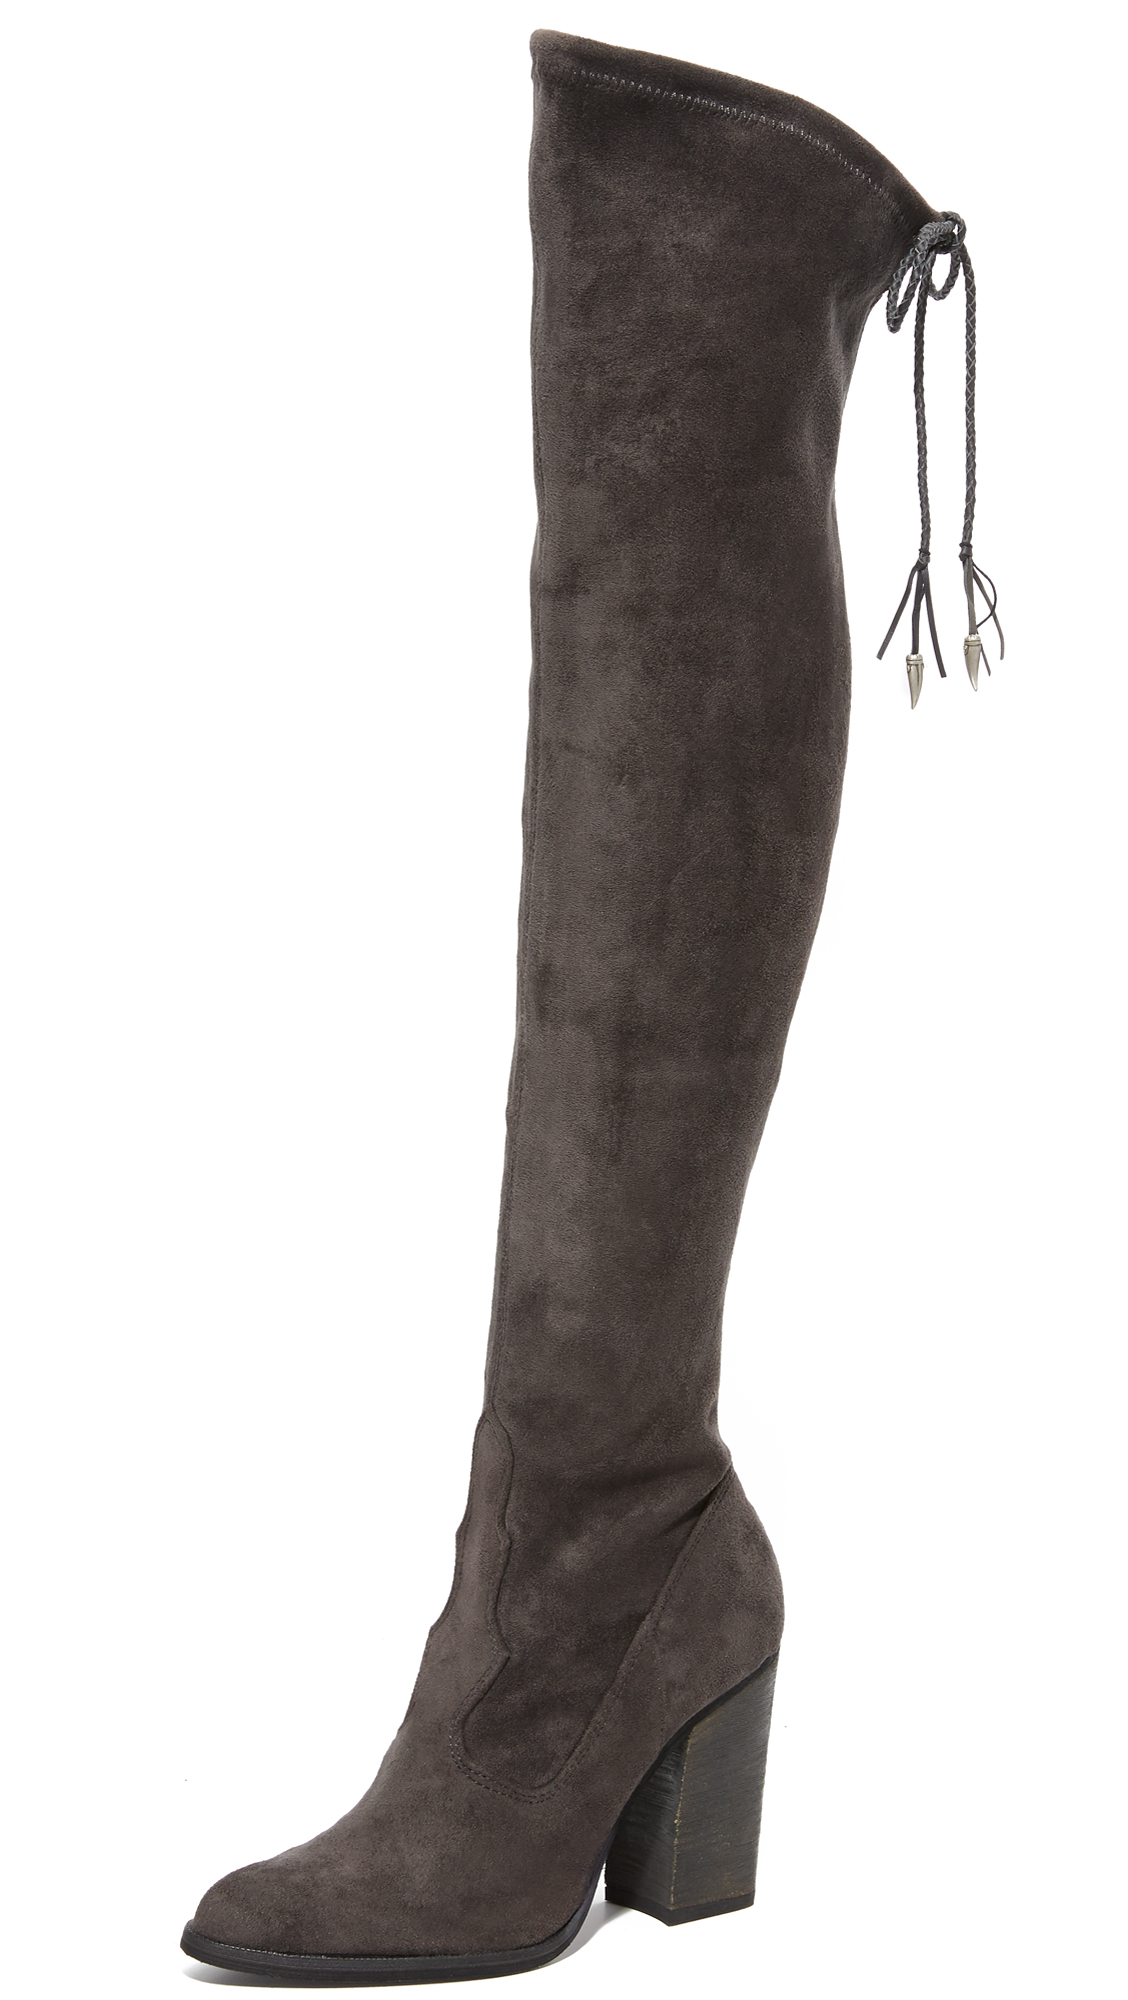 Dolce Vita Chance Over The Knee Boots - Anthracite